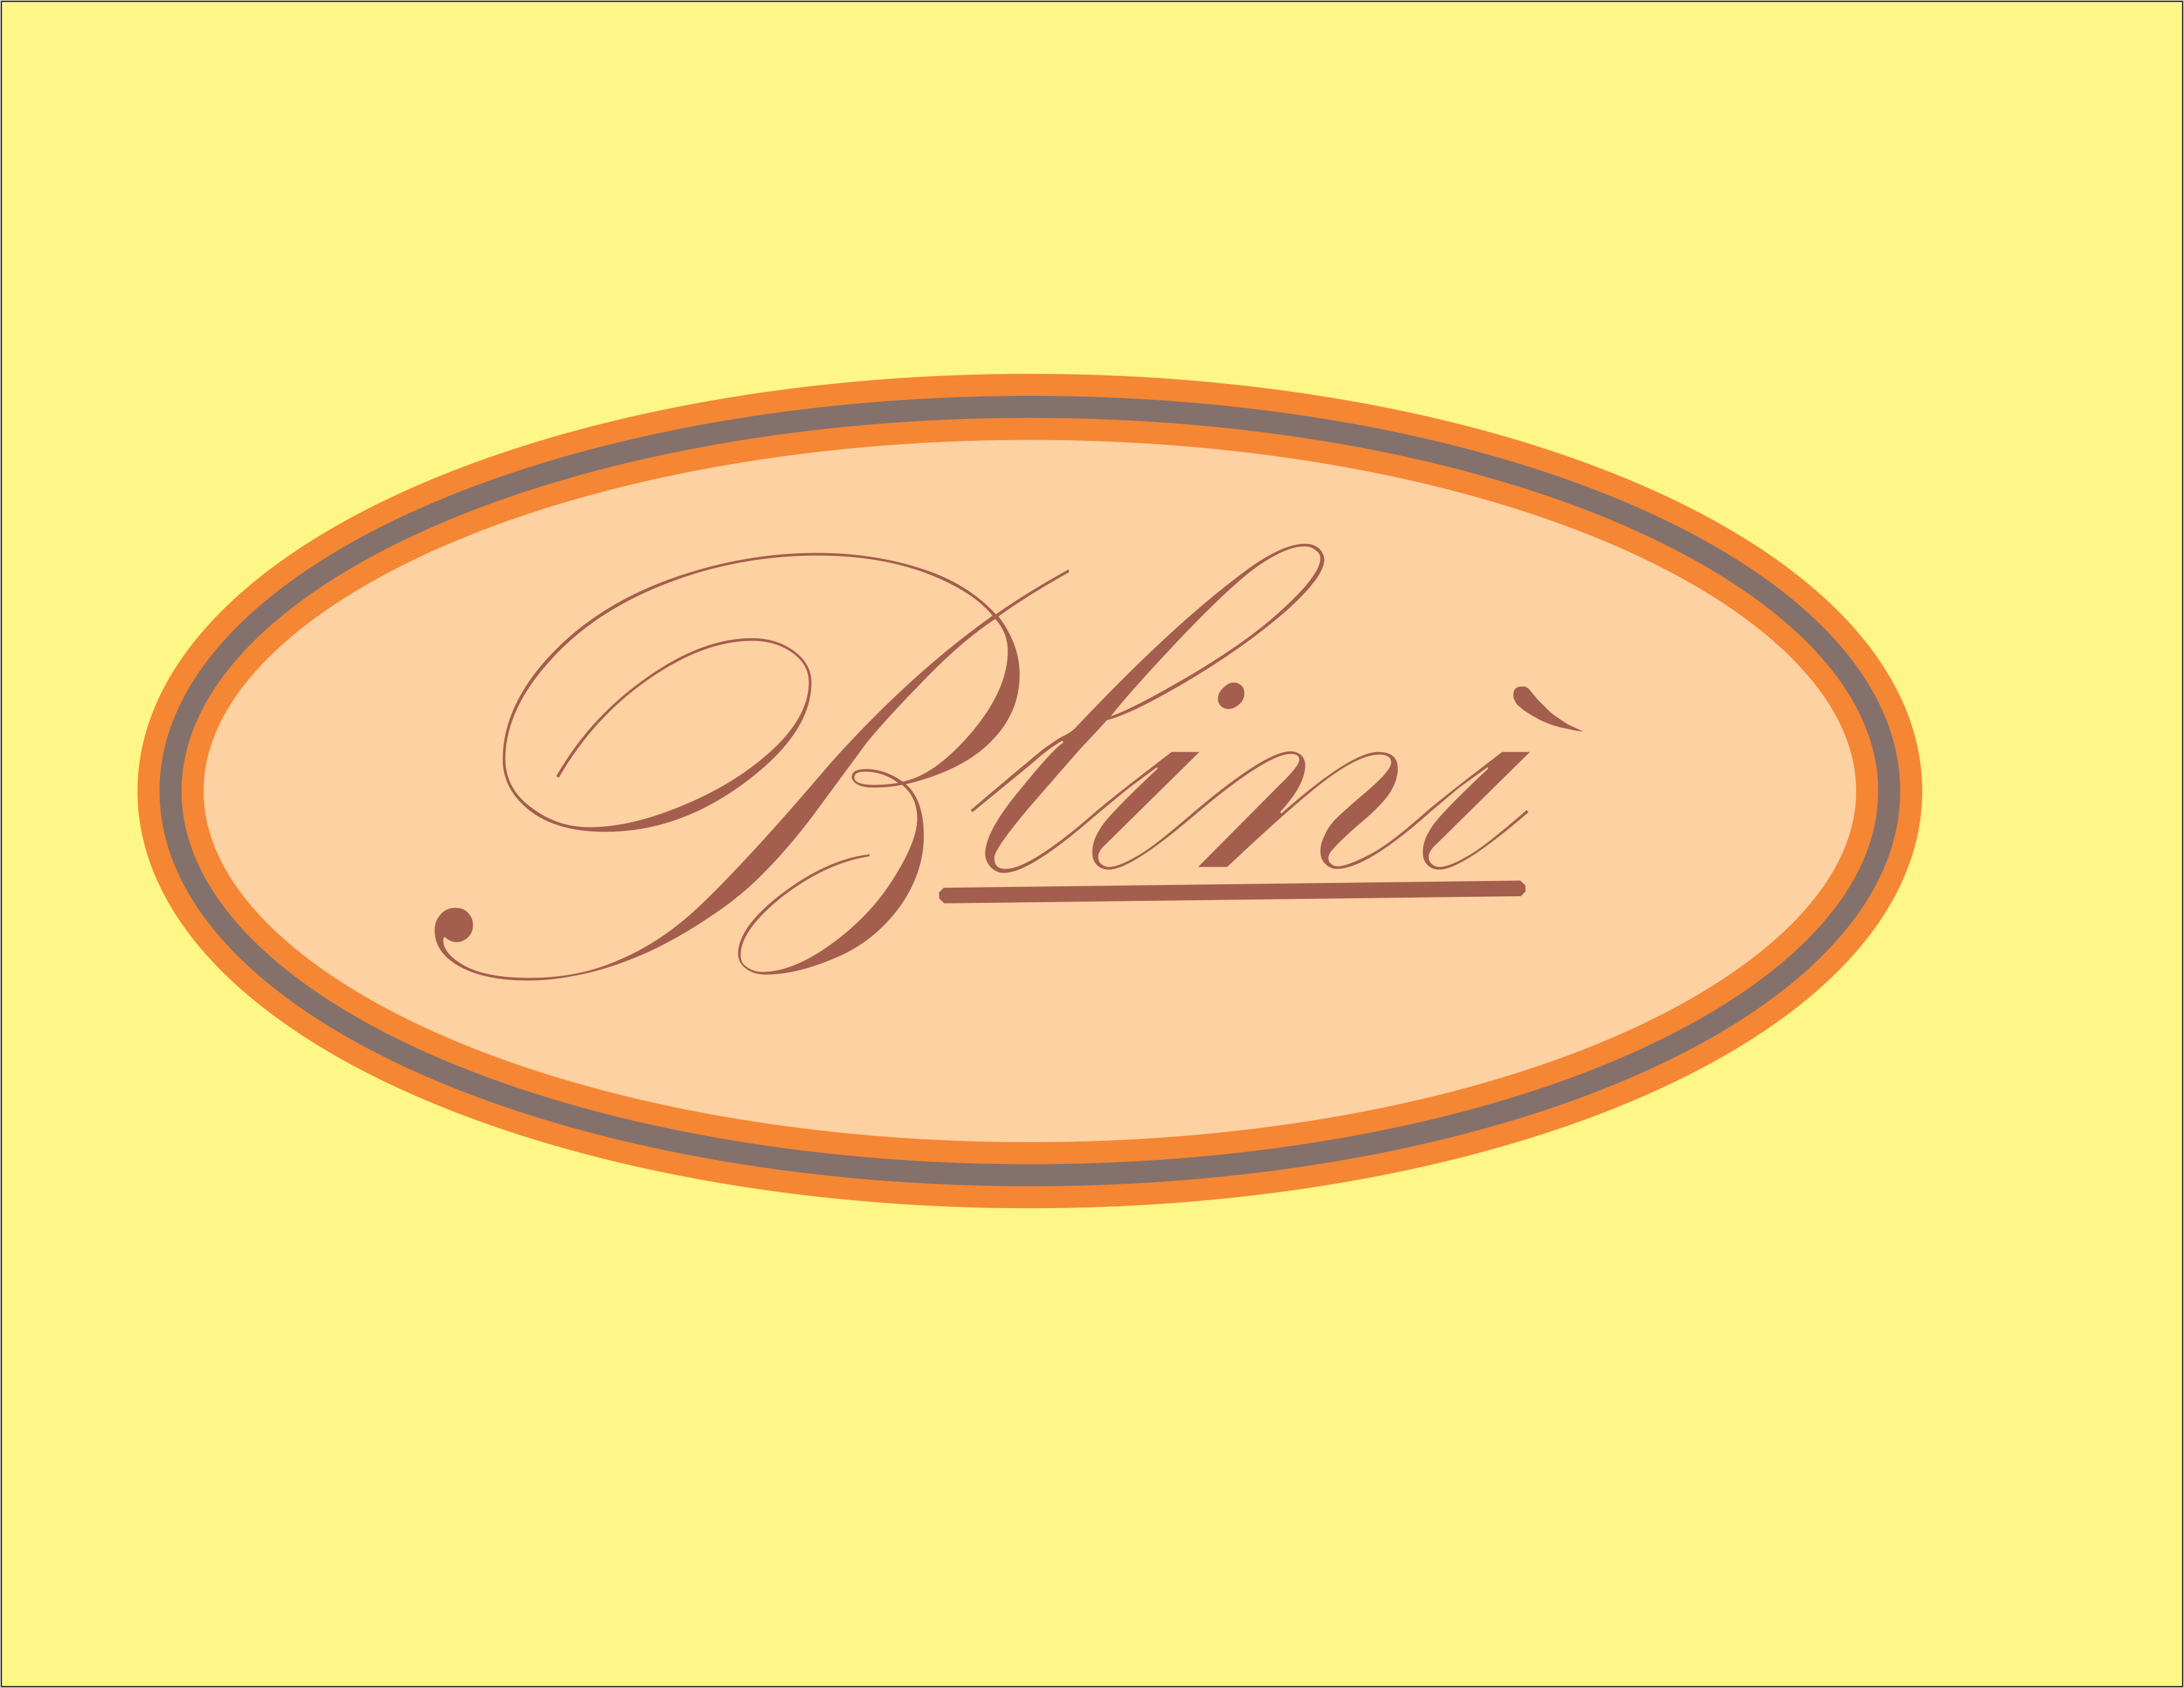 Logo Design by Romie Everwill - Entry No. 29 in the Logo Design Contest Creative Logo Design for Blinì.